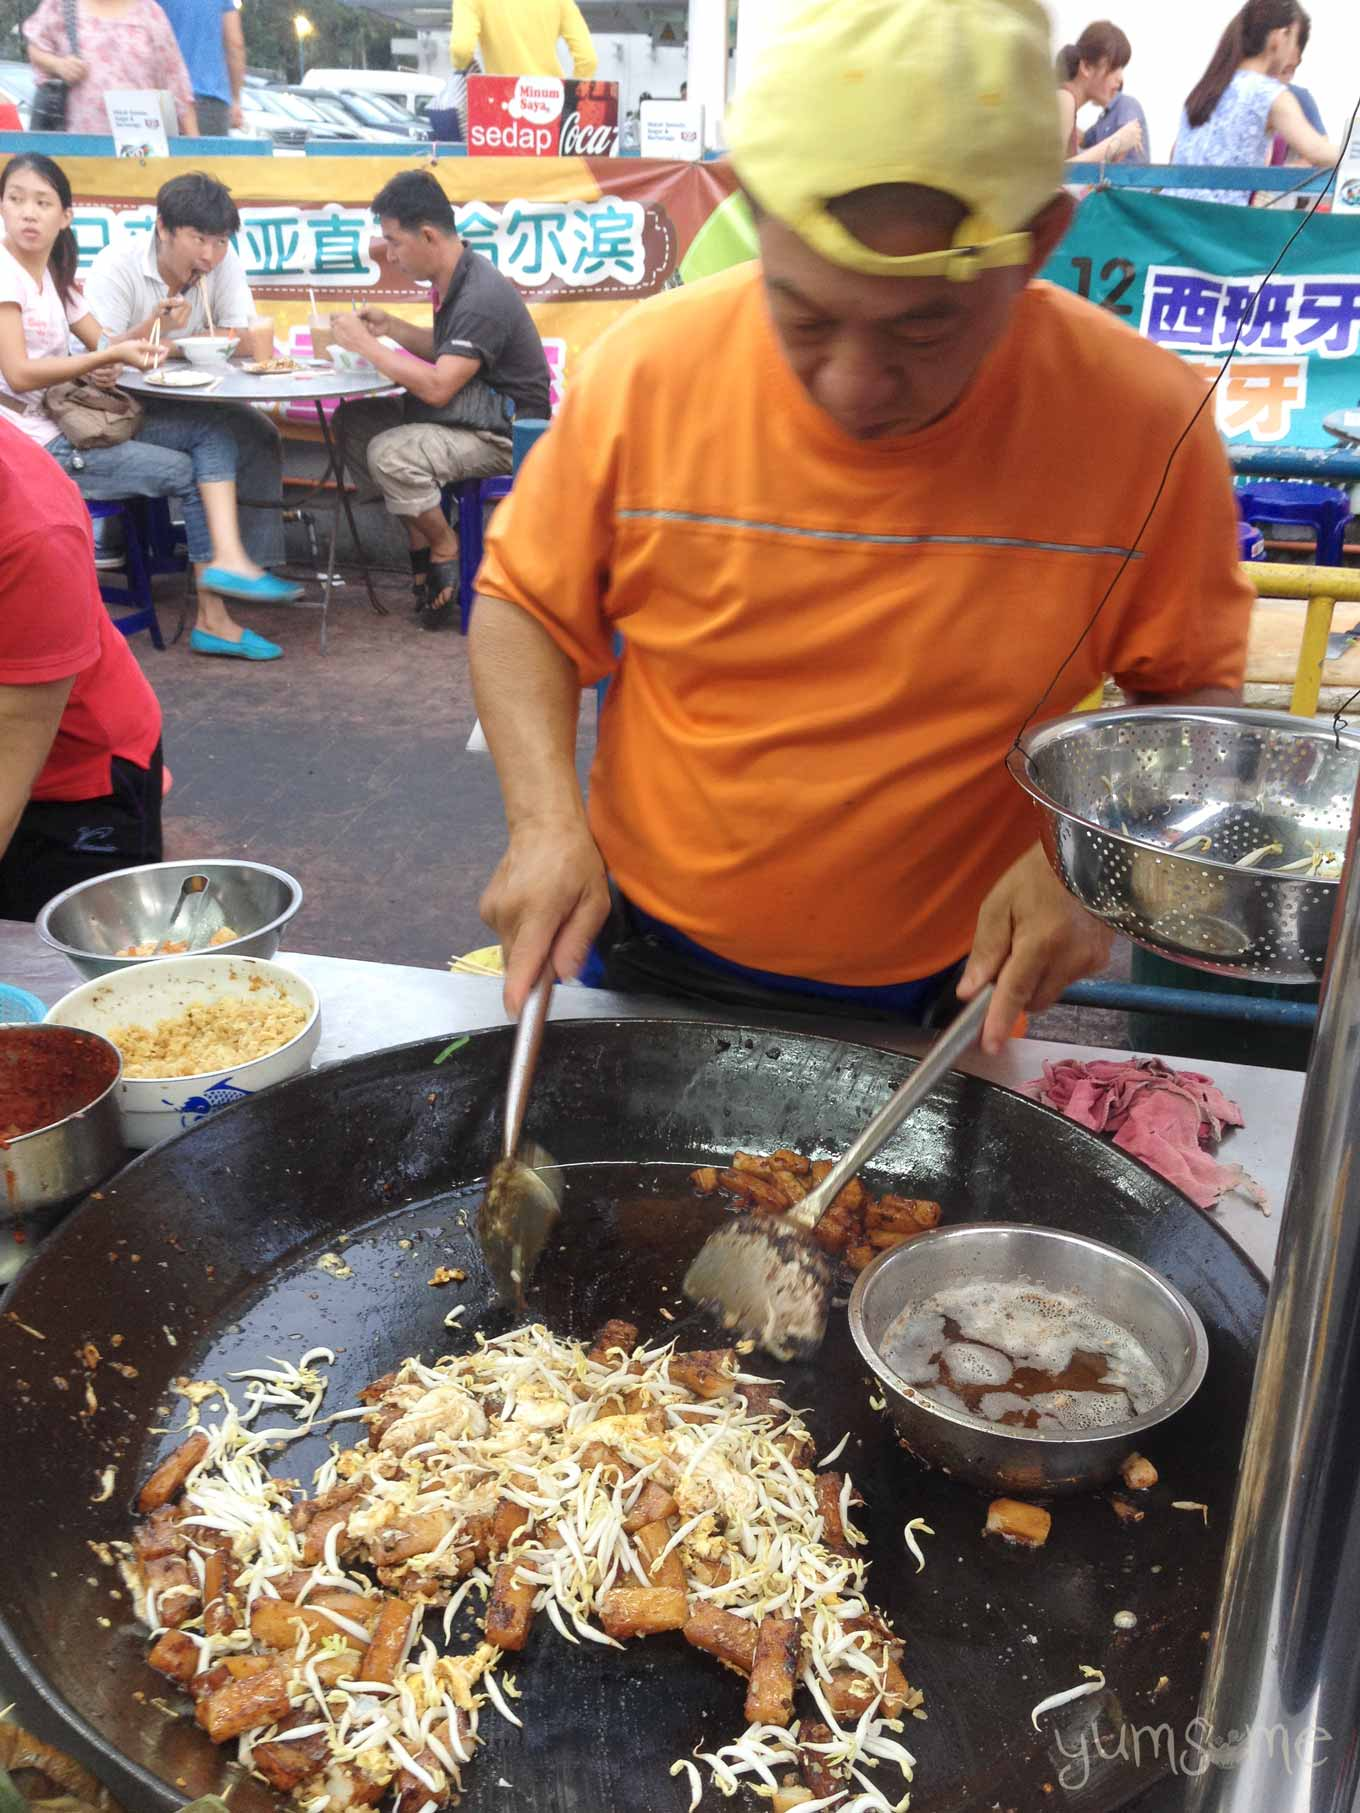 A street hawker in George Town, Penang, making a huge pan of char kway teow (pad see ew). - noodles and tofu fried with soy sauce.